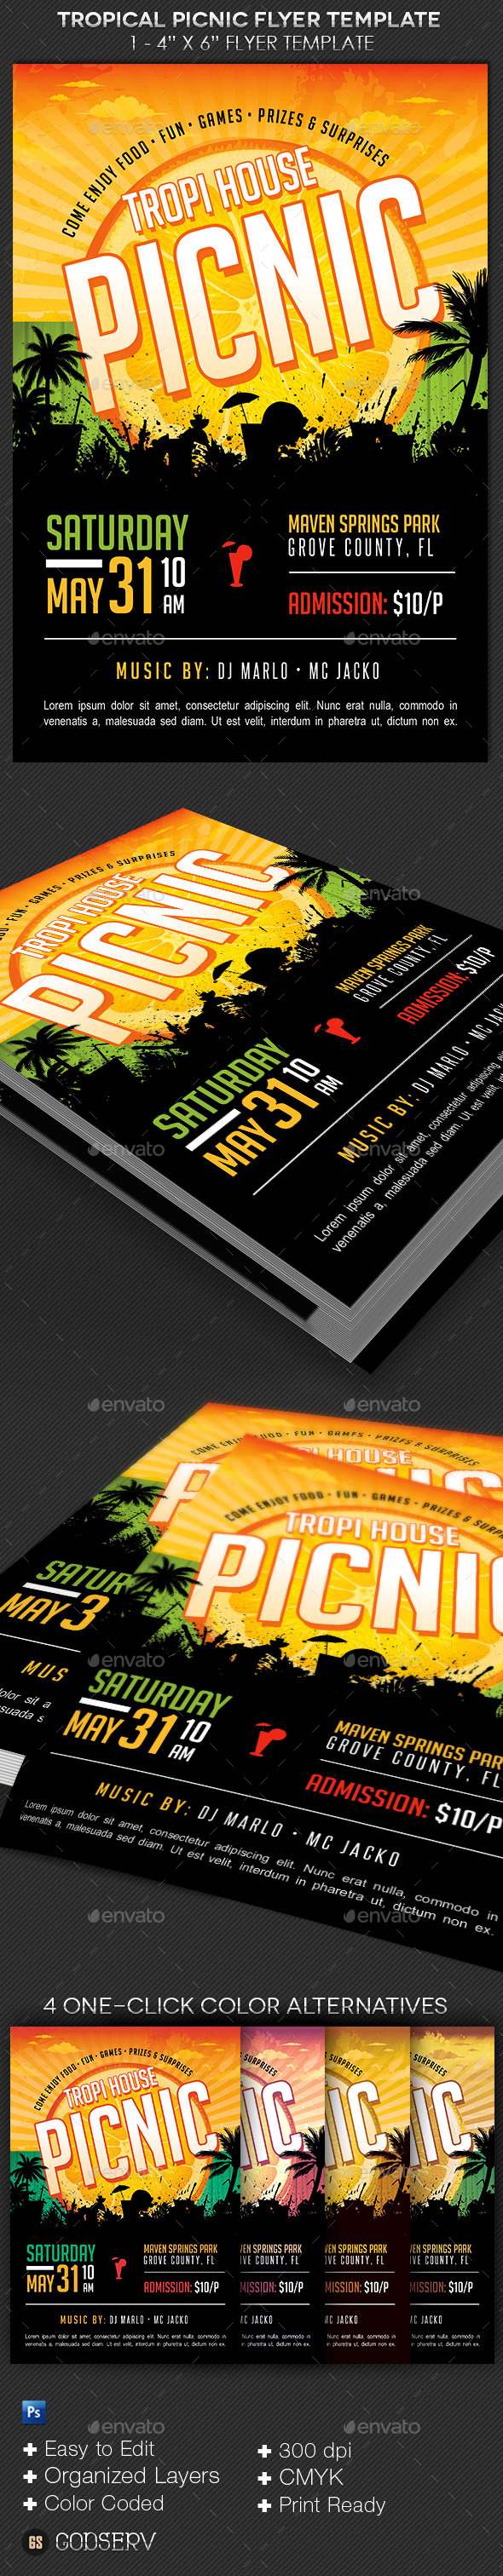 Tropical Picnic Flyer Template Graphicmule